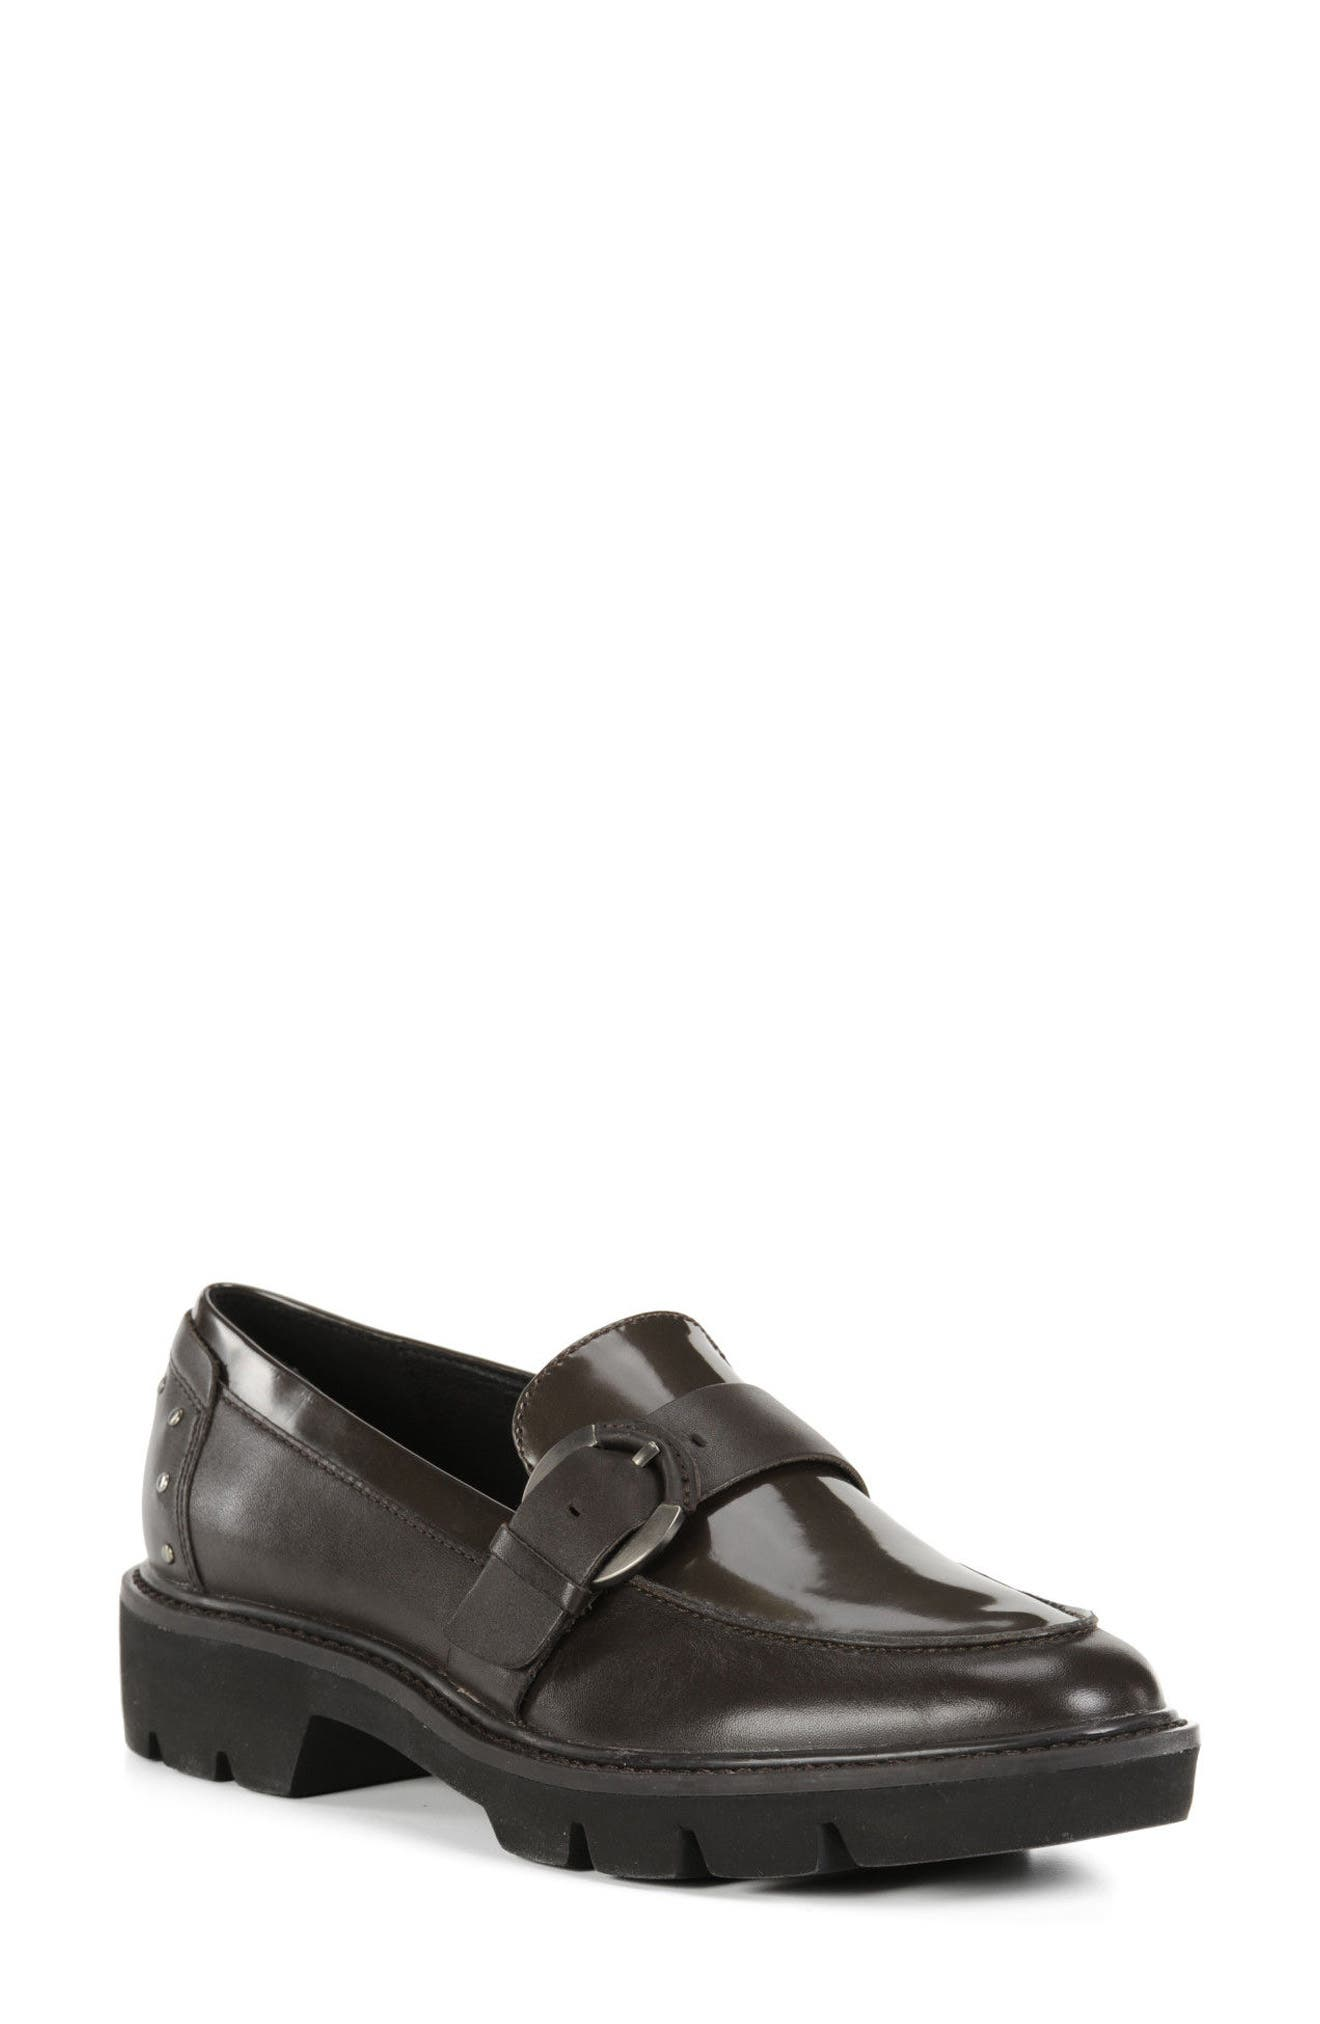 Quinlynn Loafer,                         Main,                         color, Brown Leather